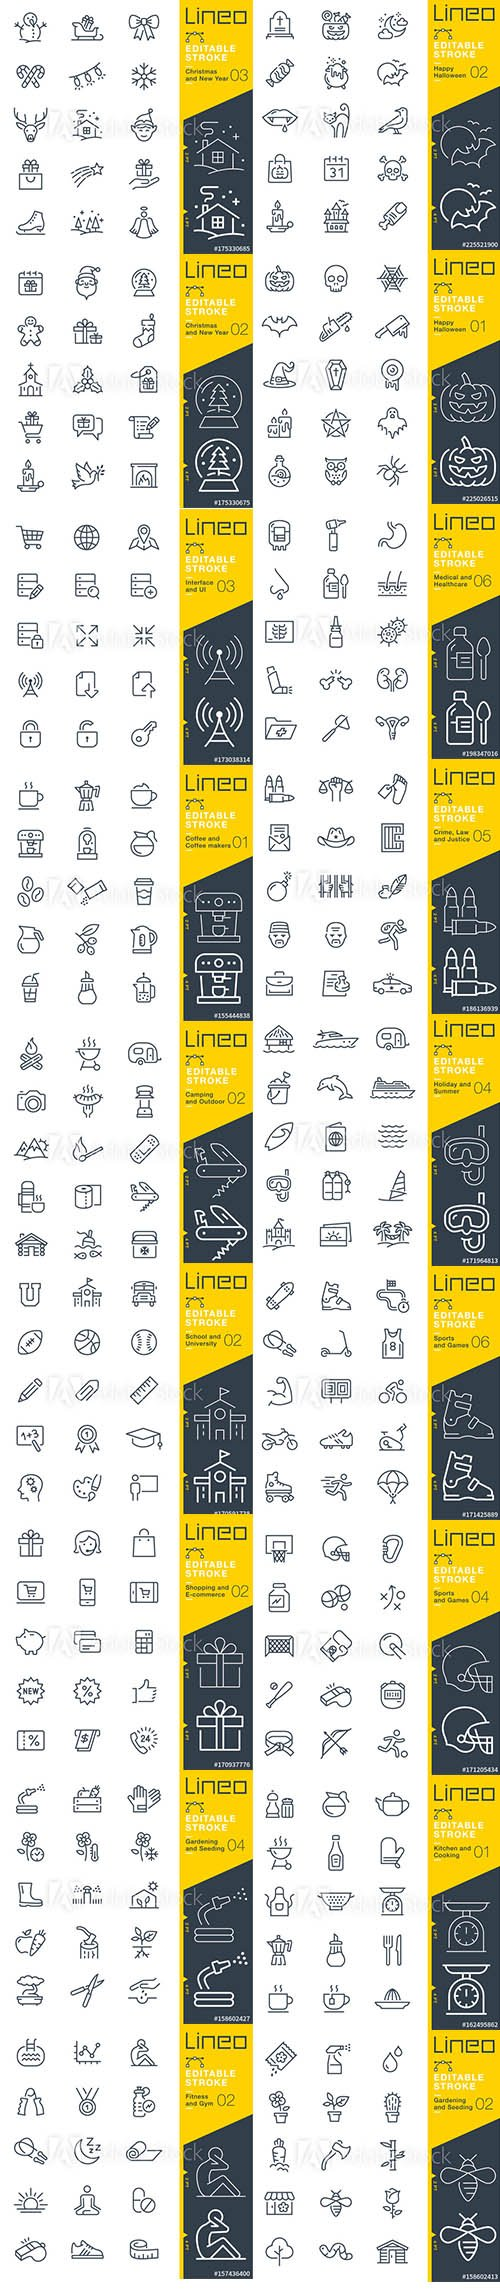 Outline Icons Pack Lineo Vol3